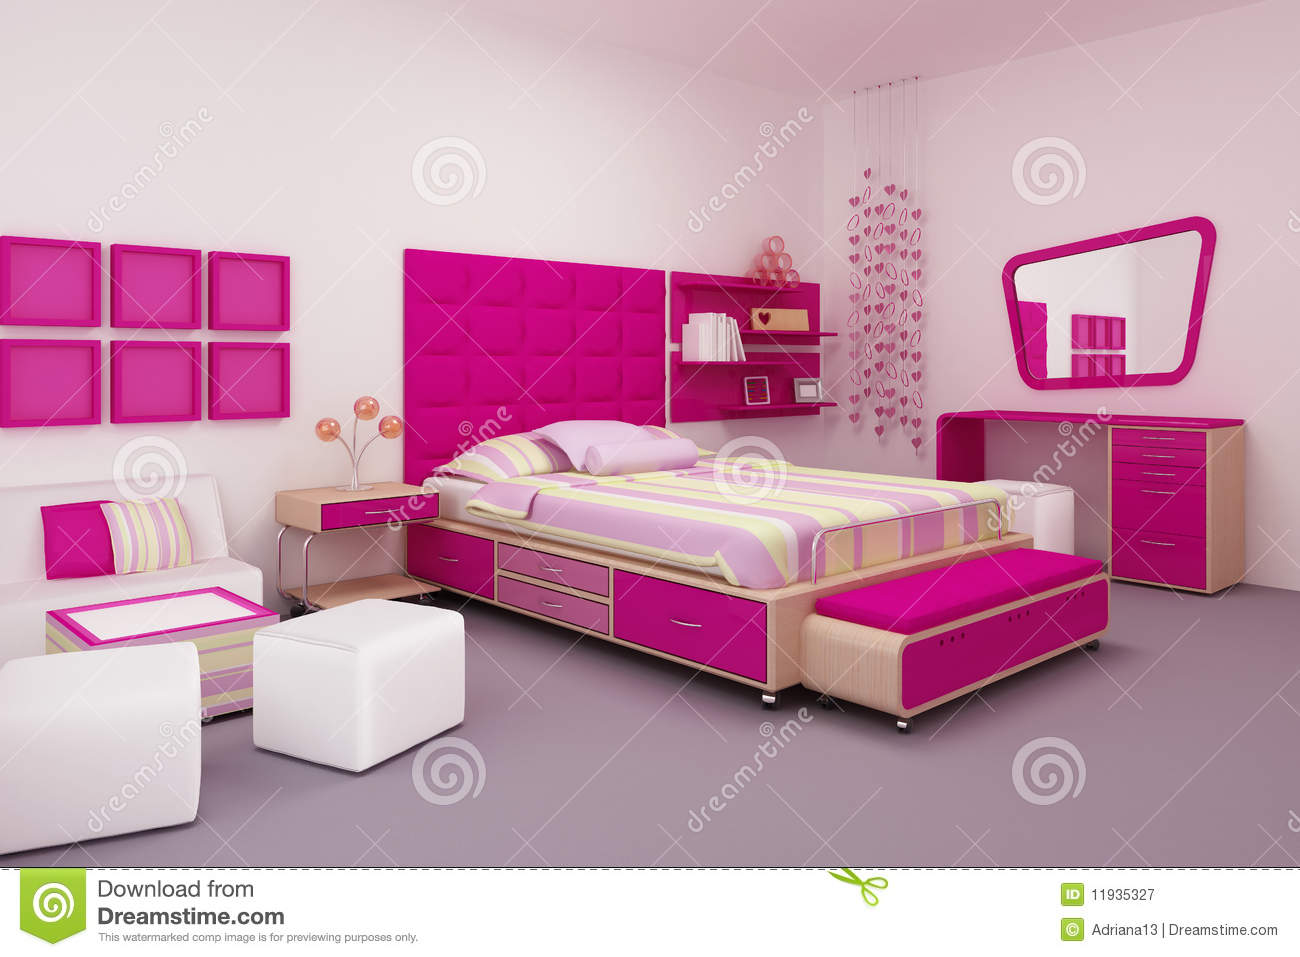 Chambre coucher de fille photographie stock libre de for Photo de chambre de fille